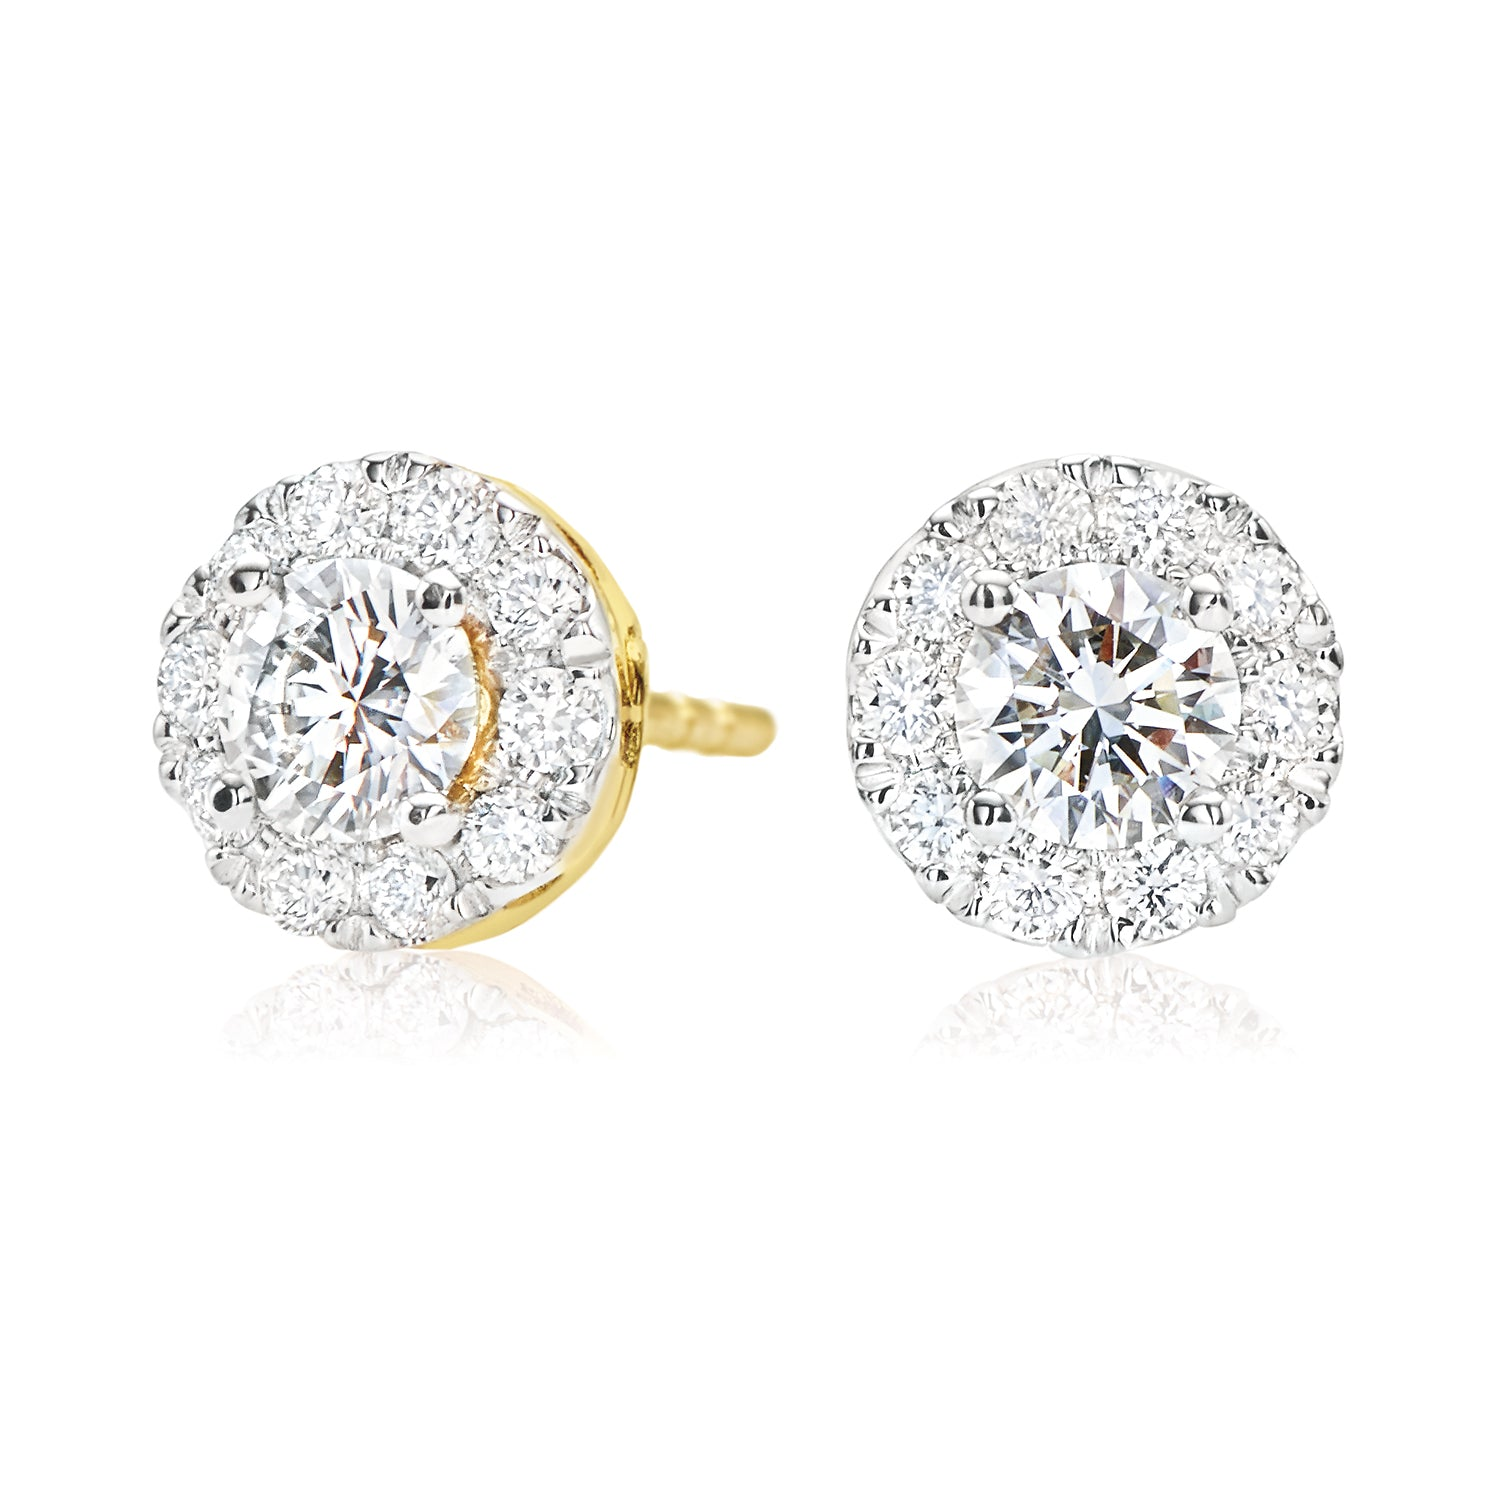 Halo 18ct Yellow Gold Round Brilliant Cut with 0.70 CARAT tw of Diamonds